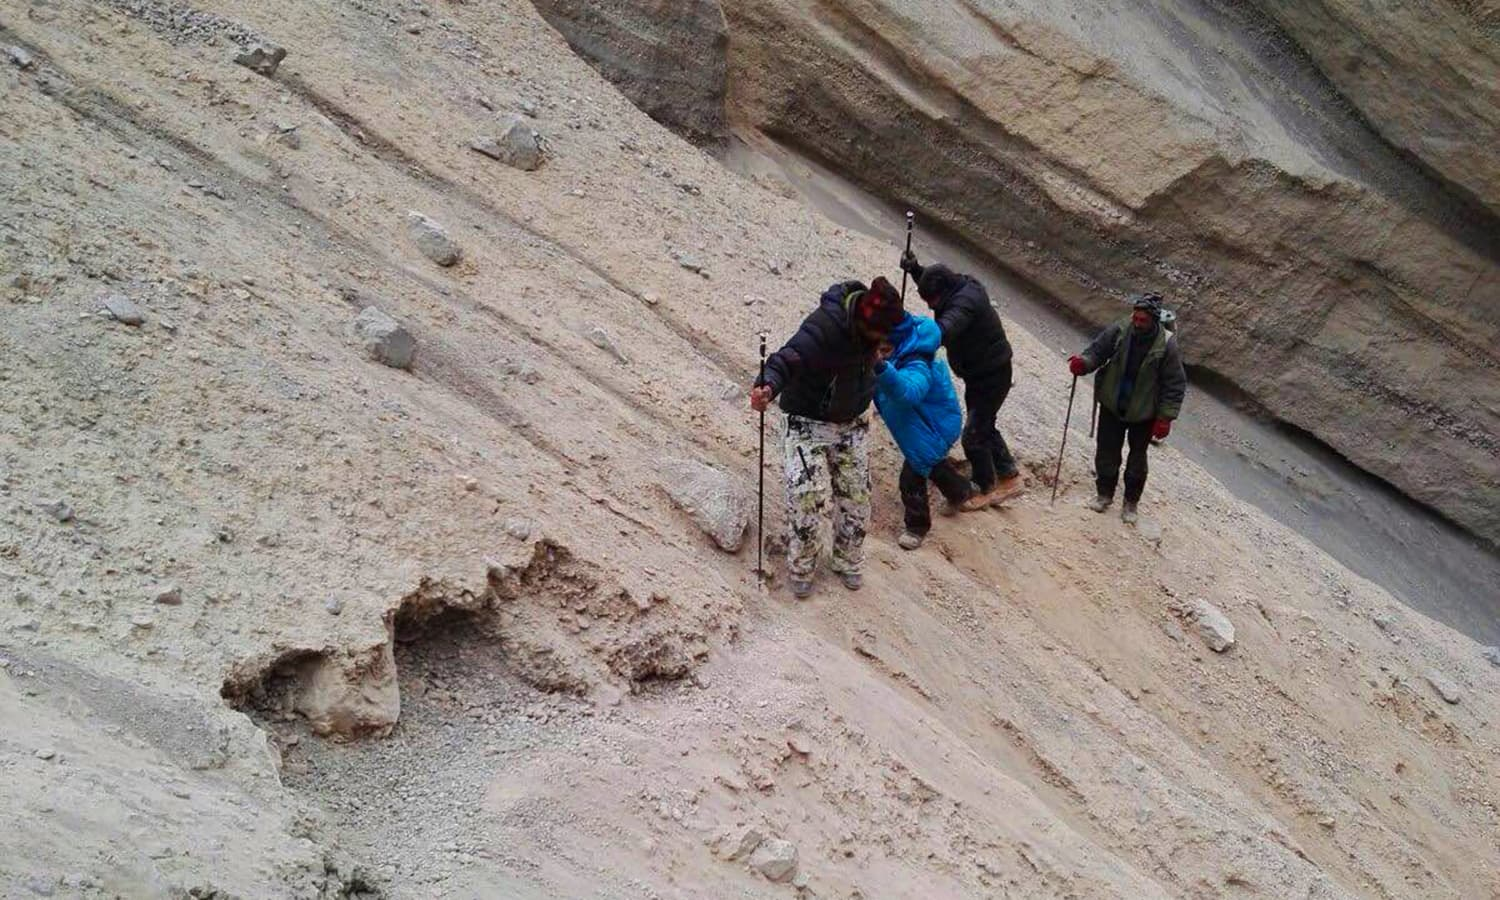 Final leg of the rockfall and I am hanging on to my guides for dear life. — Photo by Mirza Ali Baig